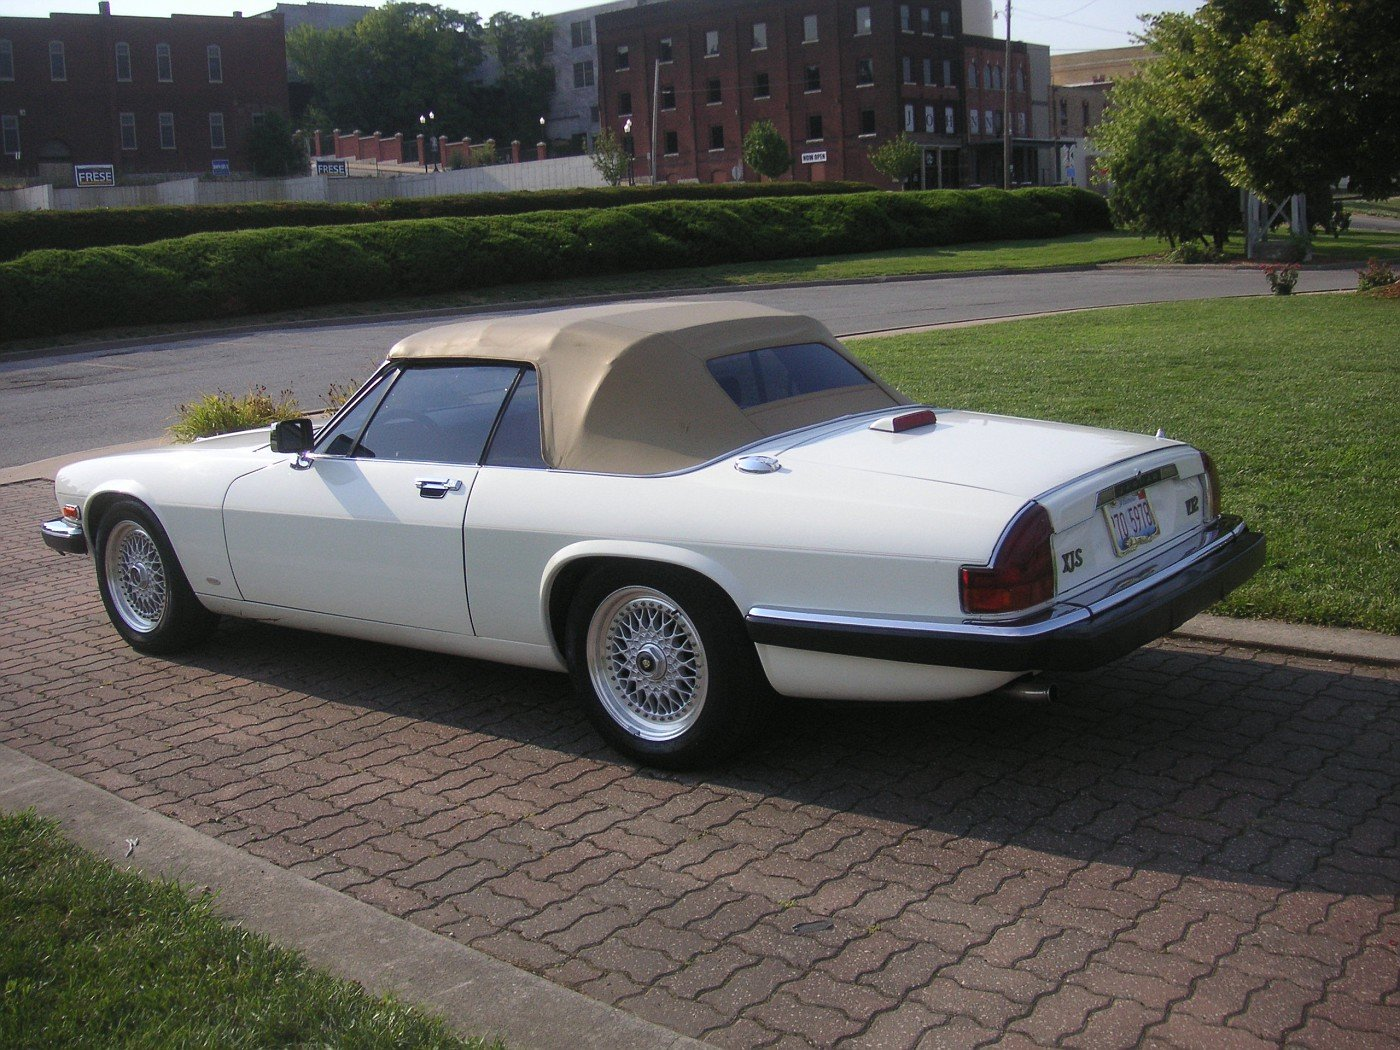 1988 Jaguar XJS V-12 Hess & Eisenhardt Convertible For Sale (picture 6 of 6)